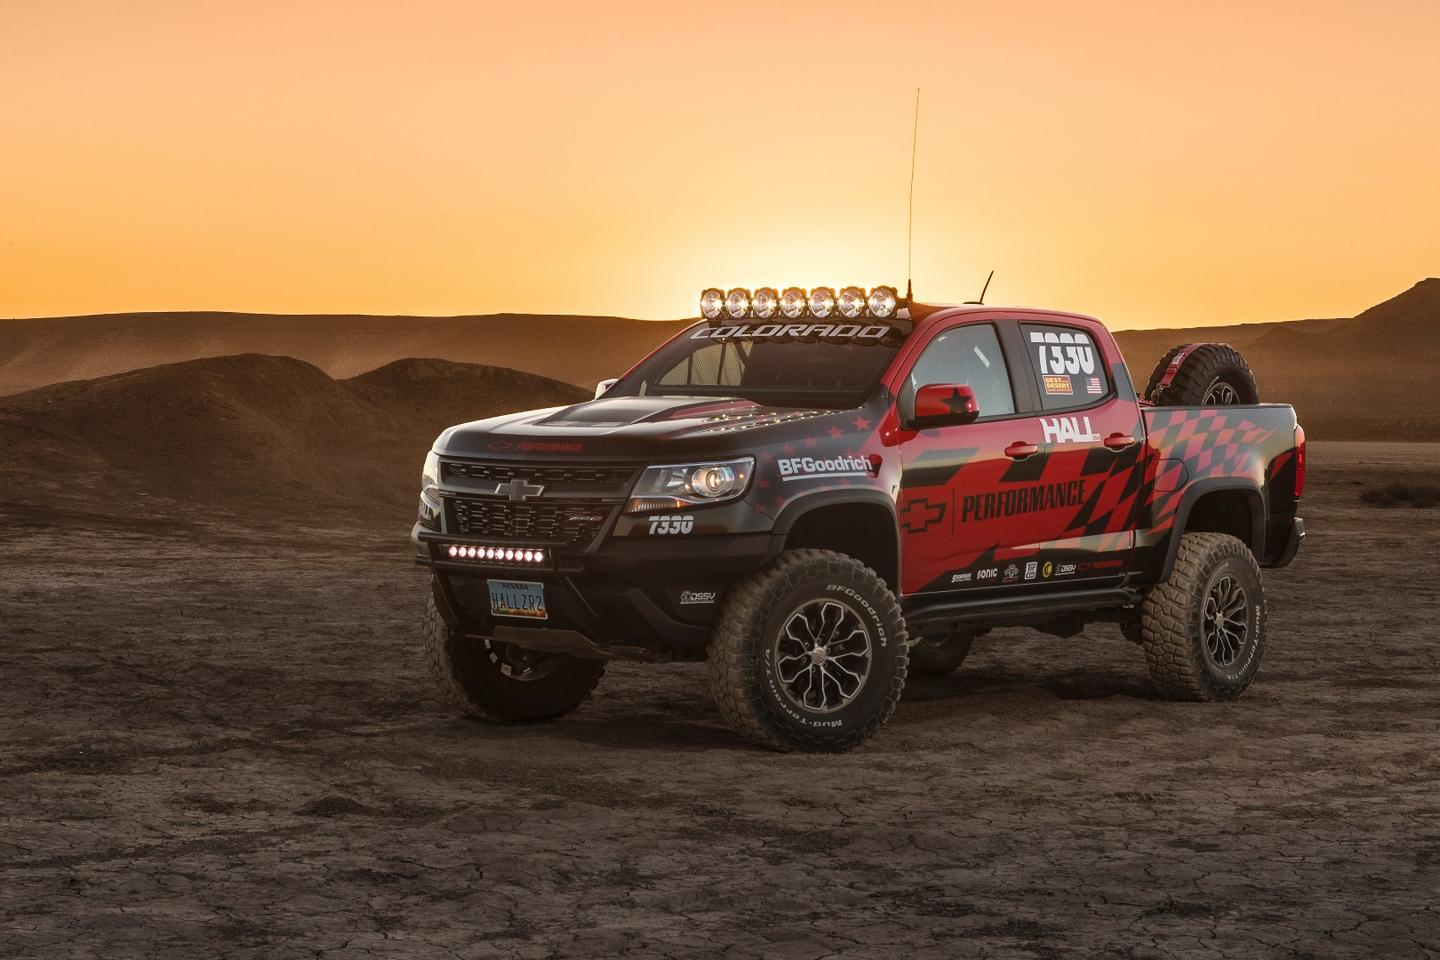 Chevy Performance is using the race and the truck as a test bed for potential parts and items to be used as dealer add-ons or standard factory installs